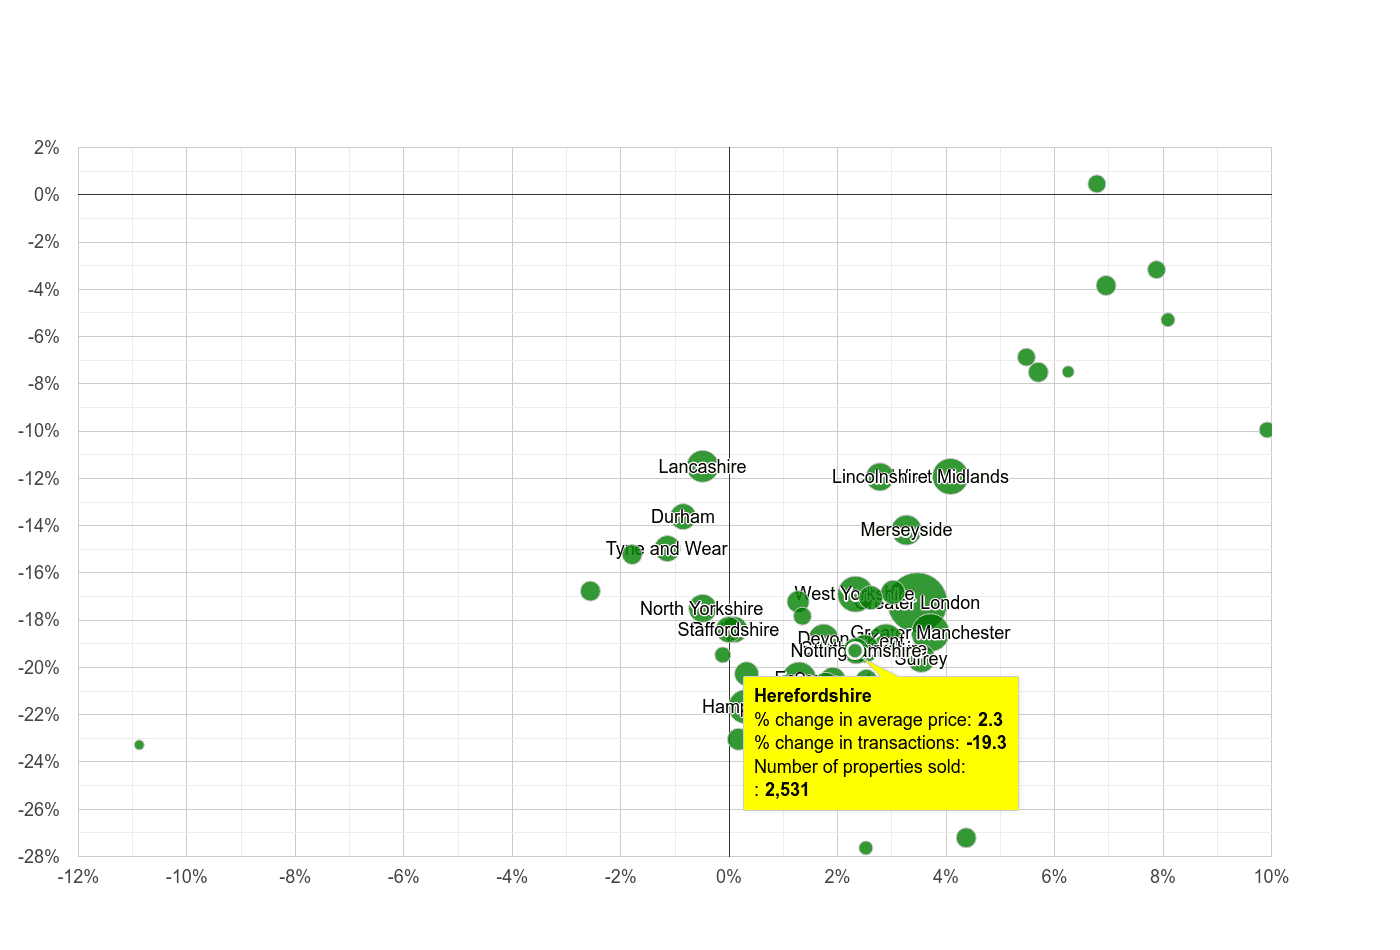 Herefordshire property price and sales volume change relative to other counties